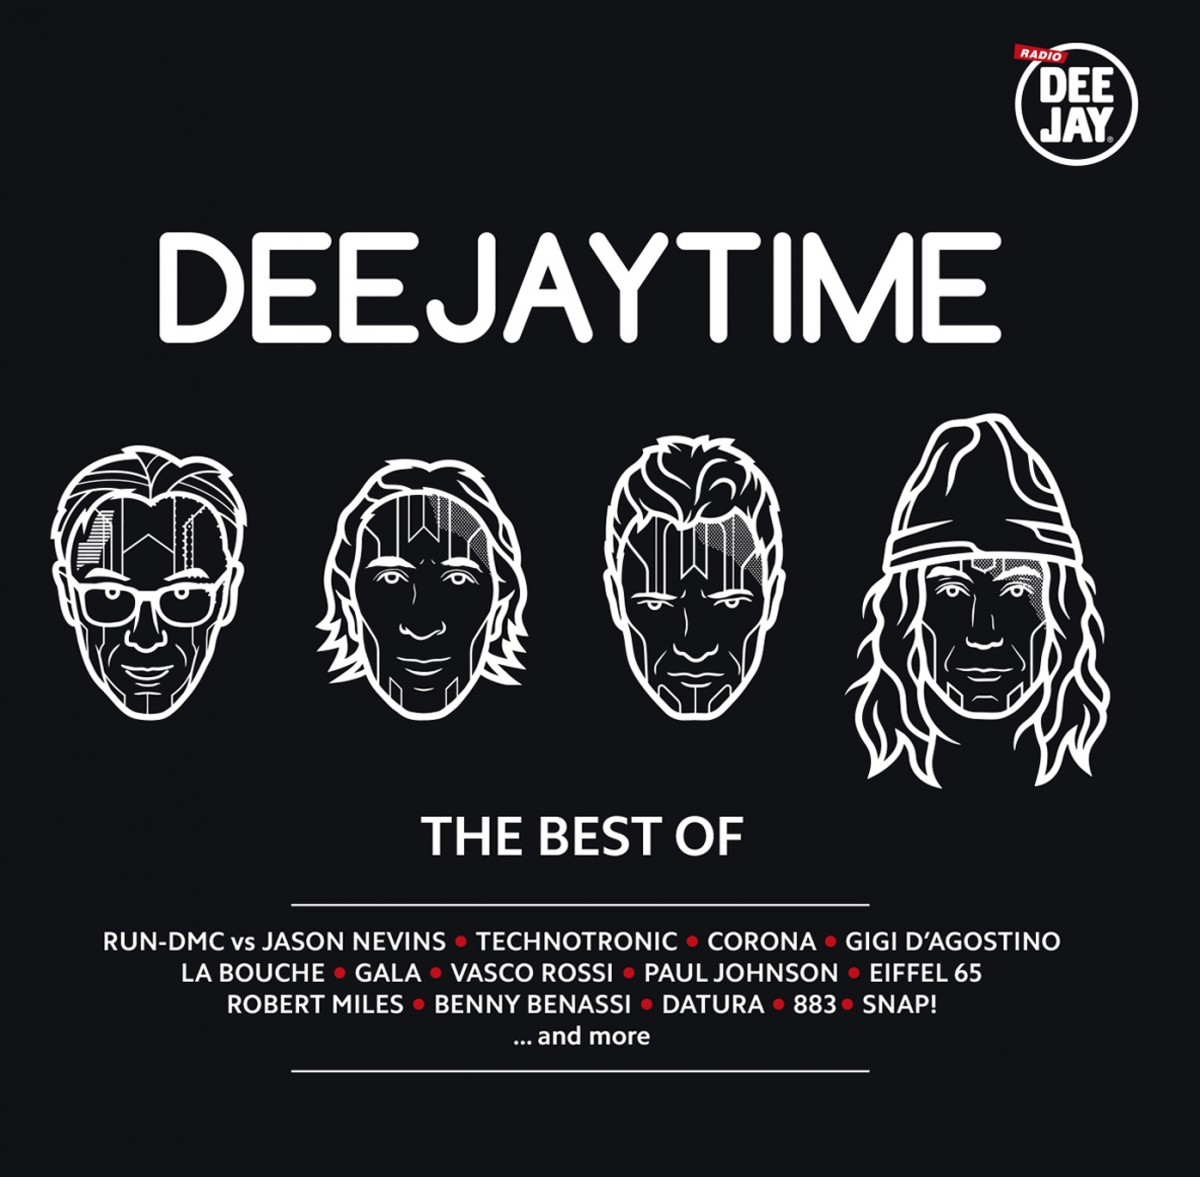 DEEJAY TIME - THE BEST OF